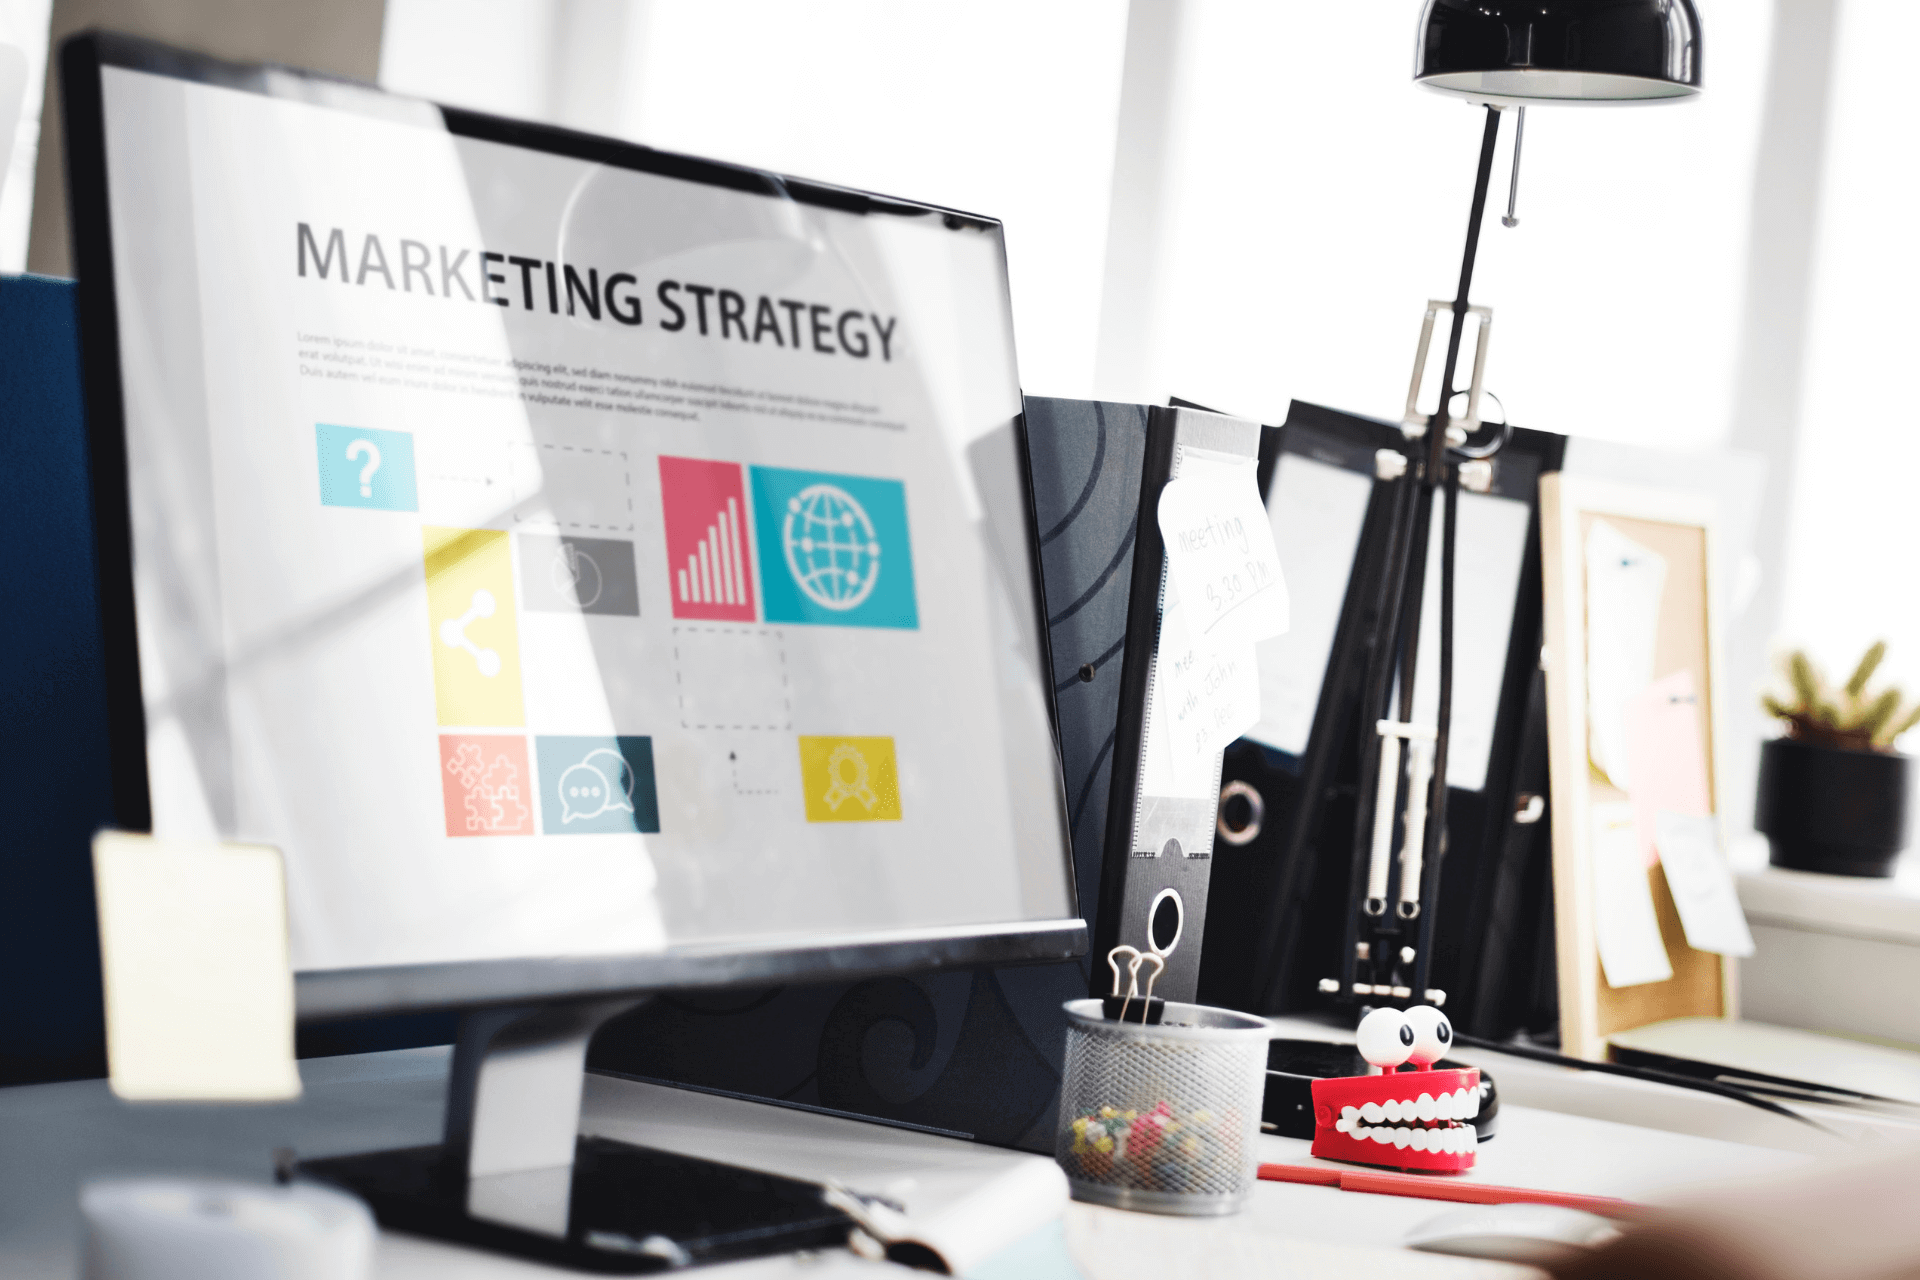 This image depicts a computer screen showing a marketing strategy cover